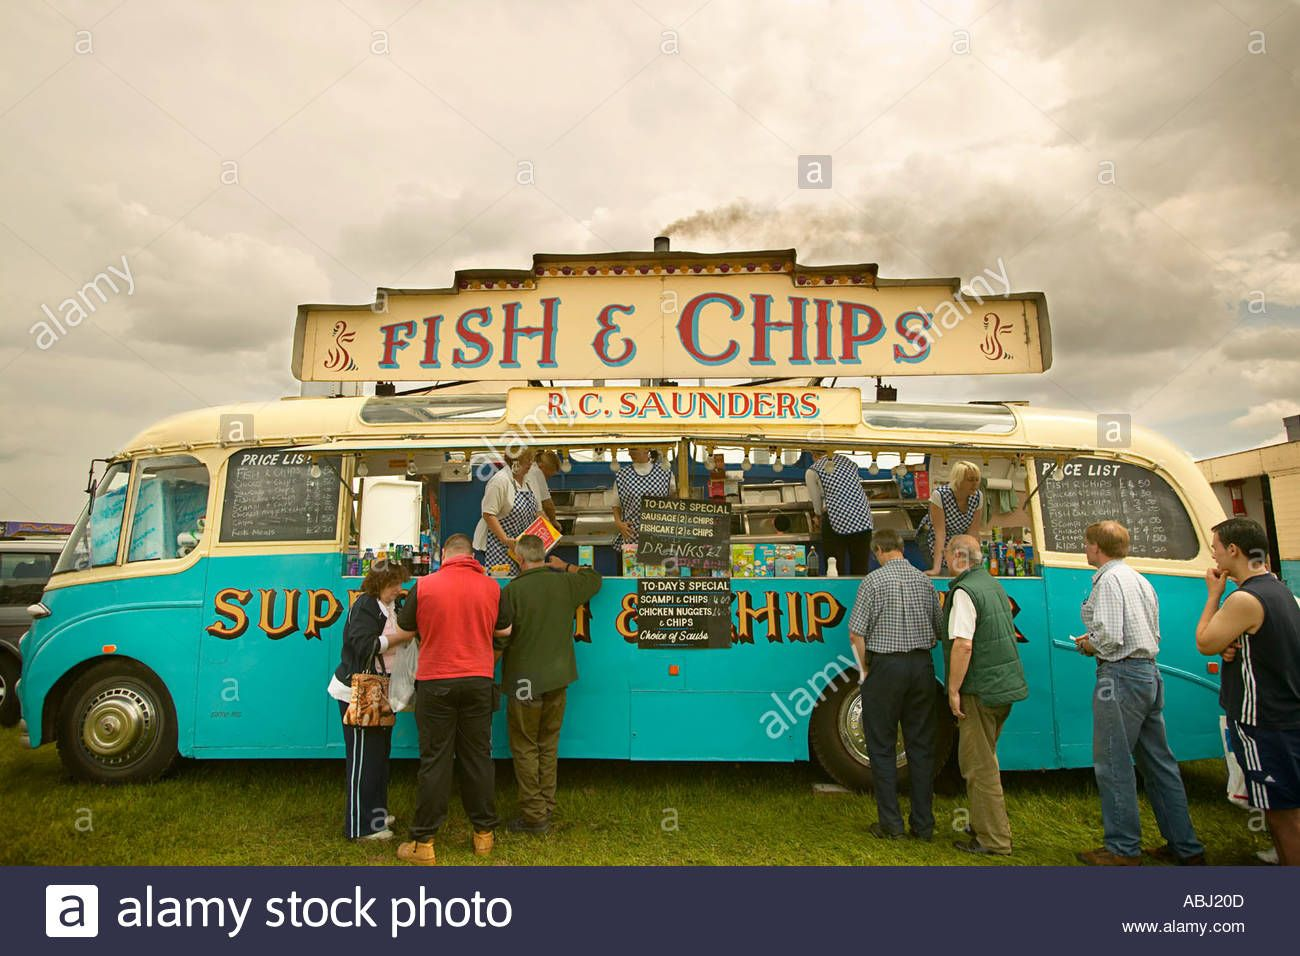 Pin by stephanie oleson on concession in 2019 Fish, chip